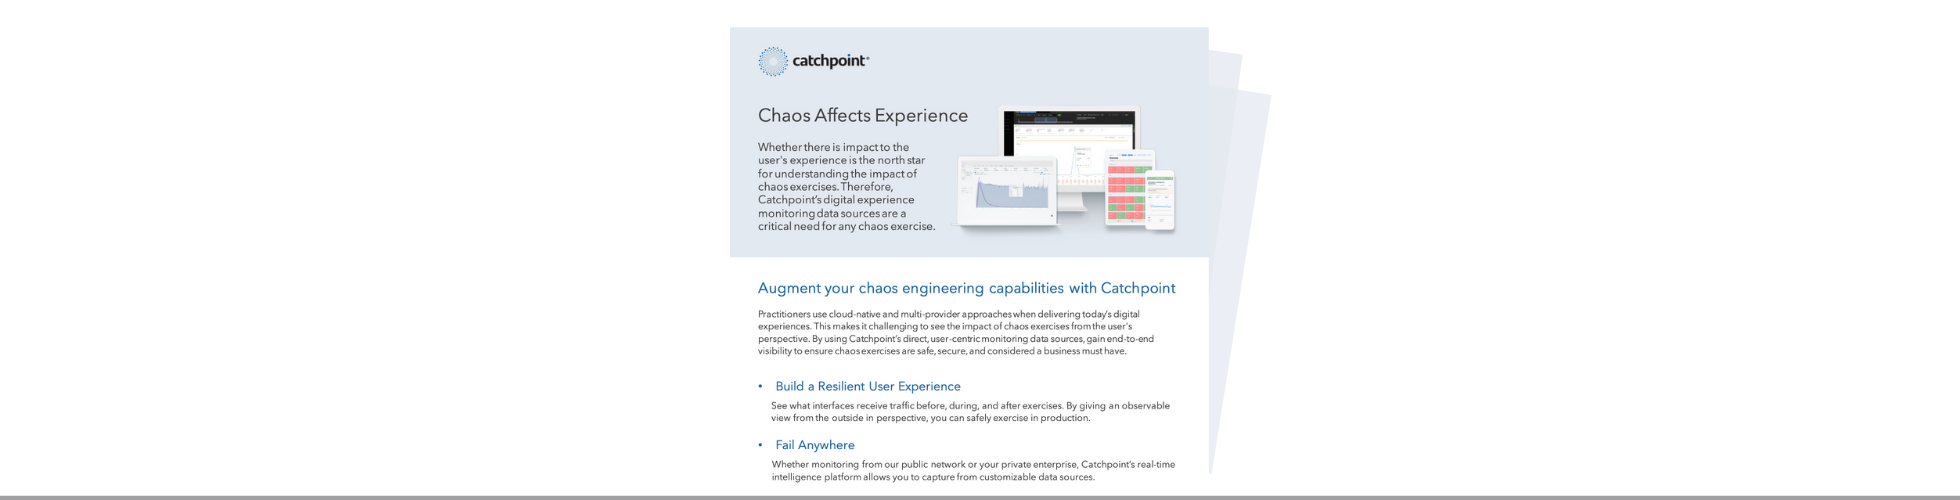 Chaos DataSheet Landing Page Image with line